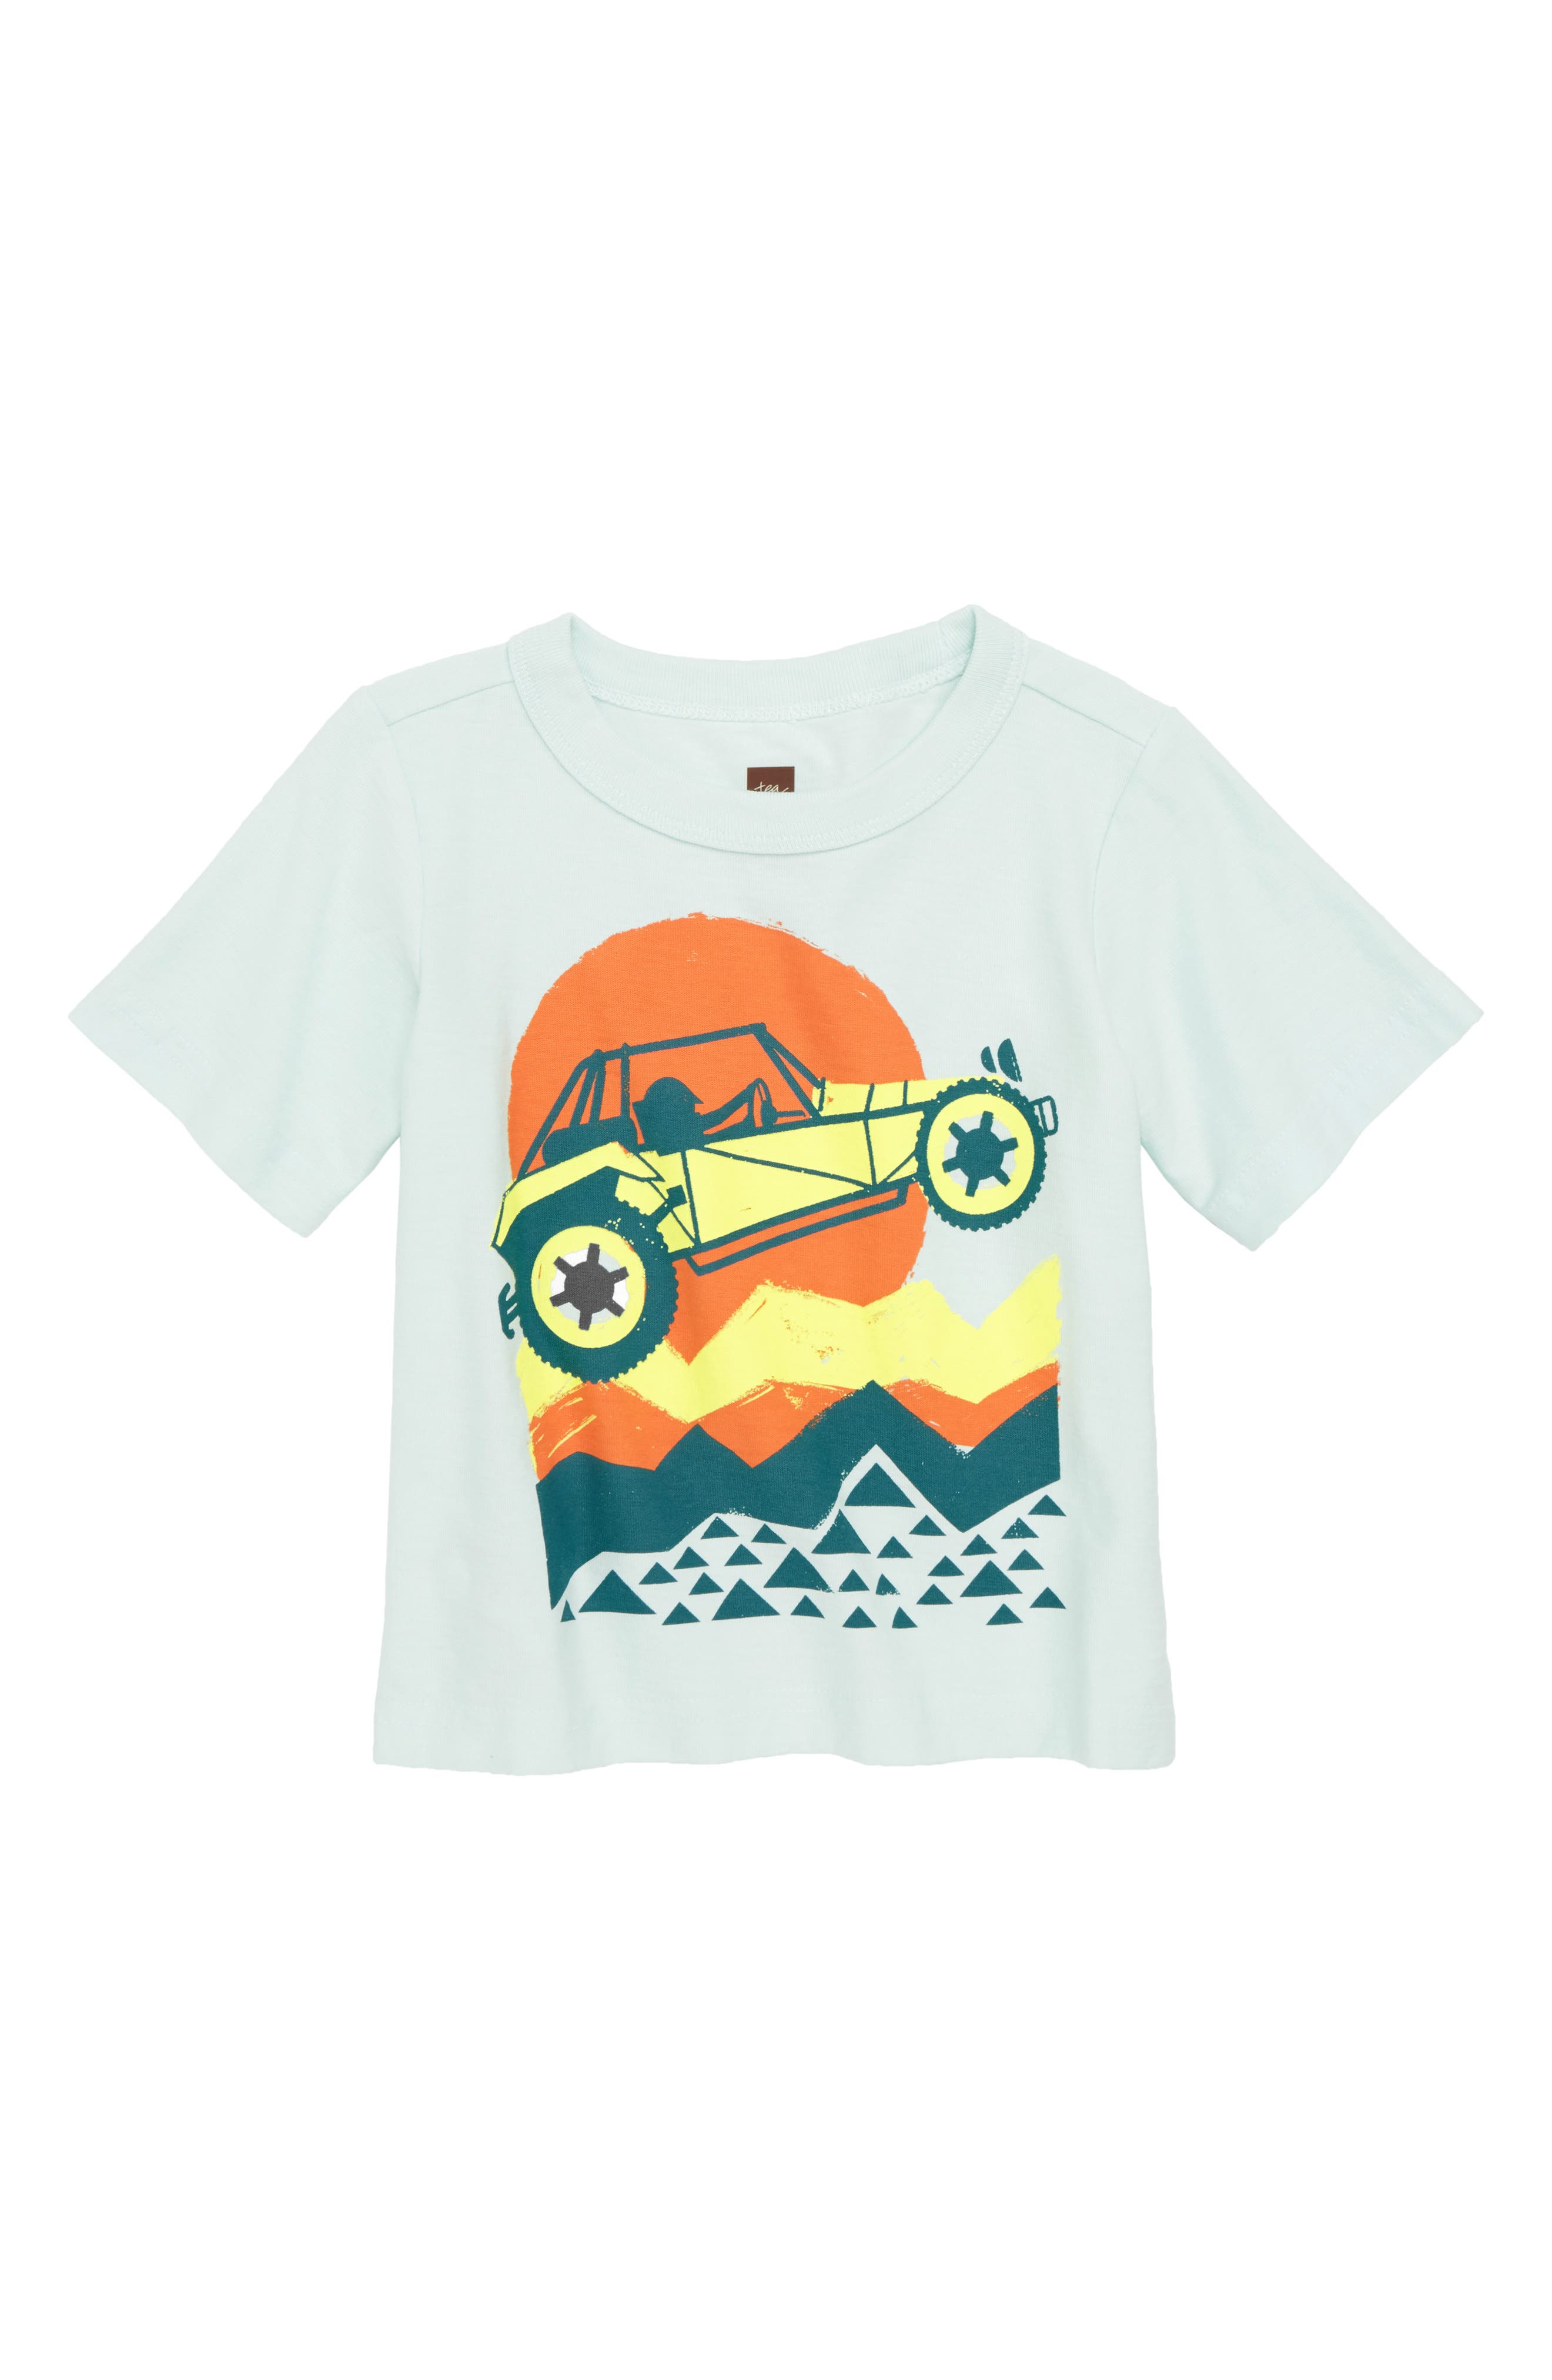 Dune Buggy T-Shirt,                         Main,                         color, 456